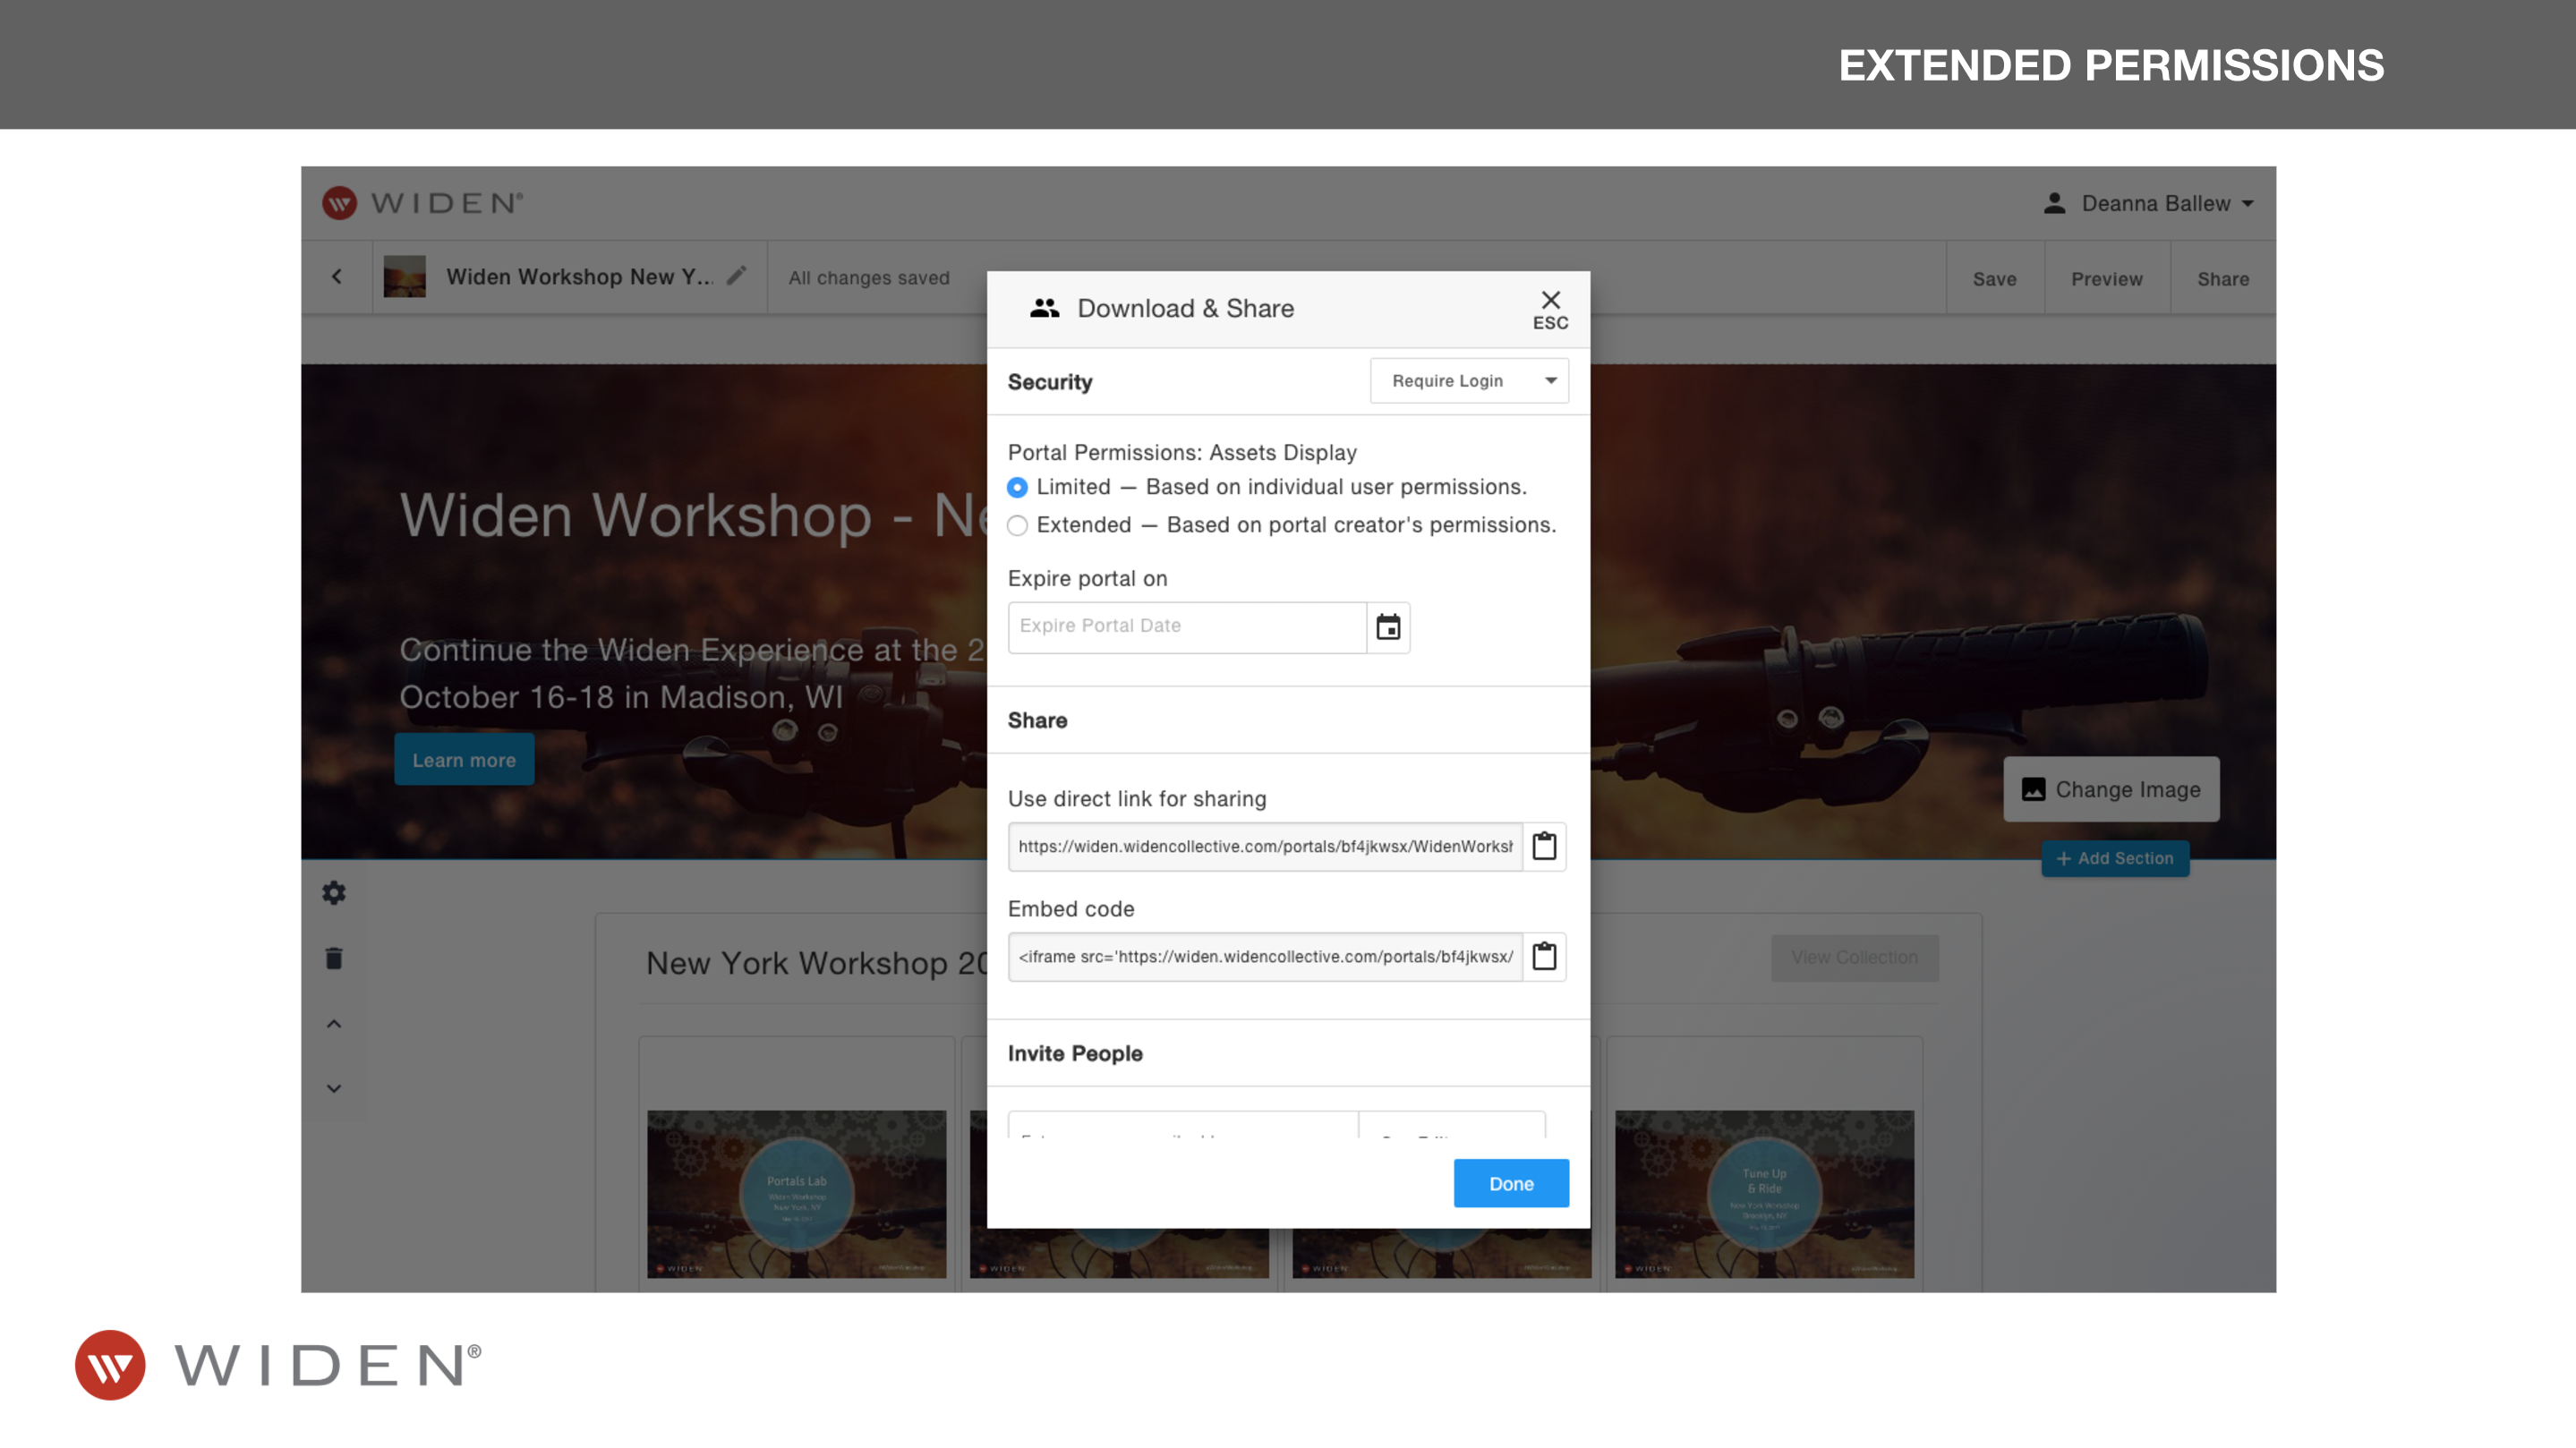 Collections Management Brand Portal Permissions